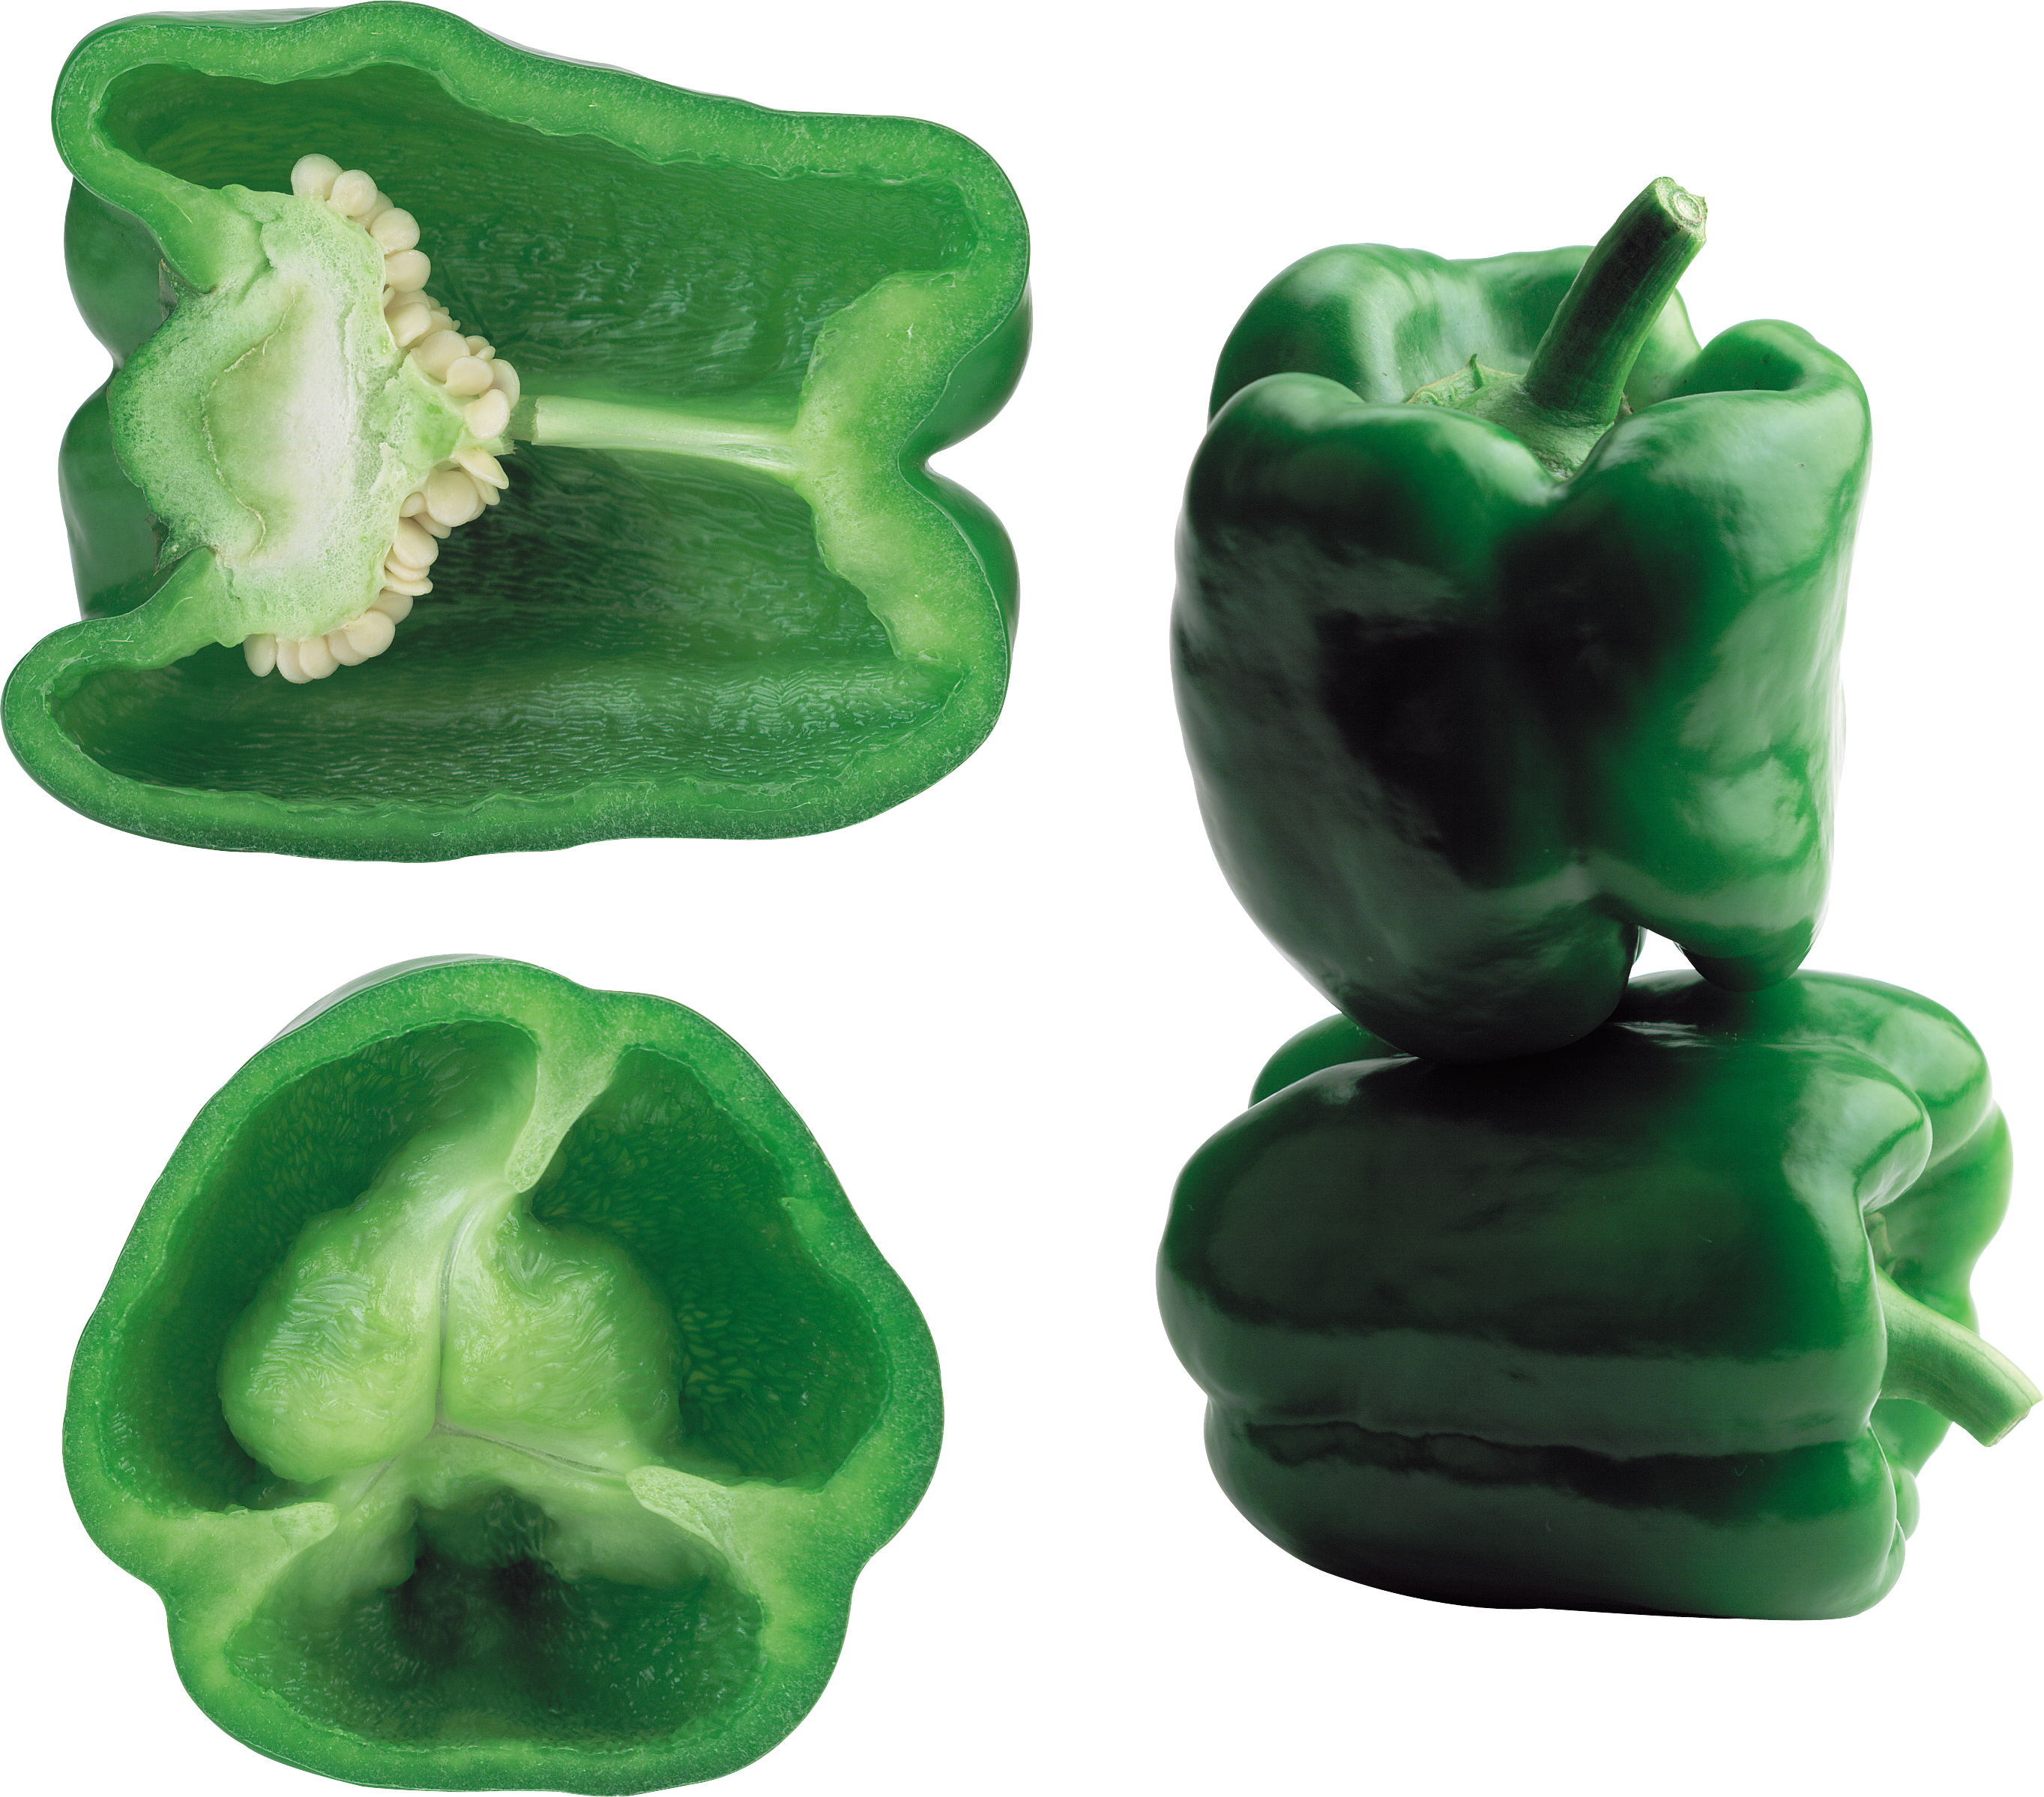 Pepper PNG images Download